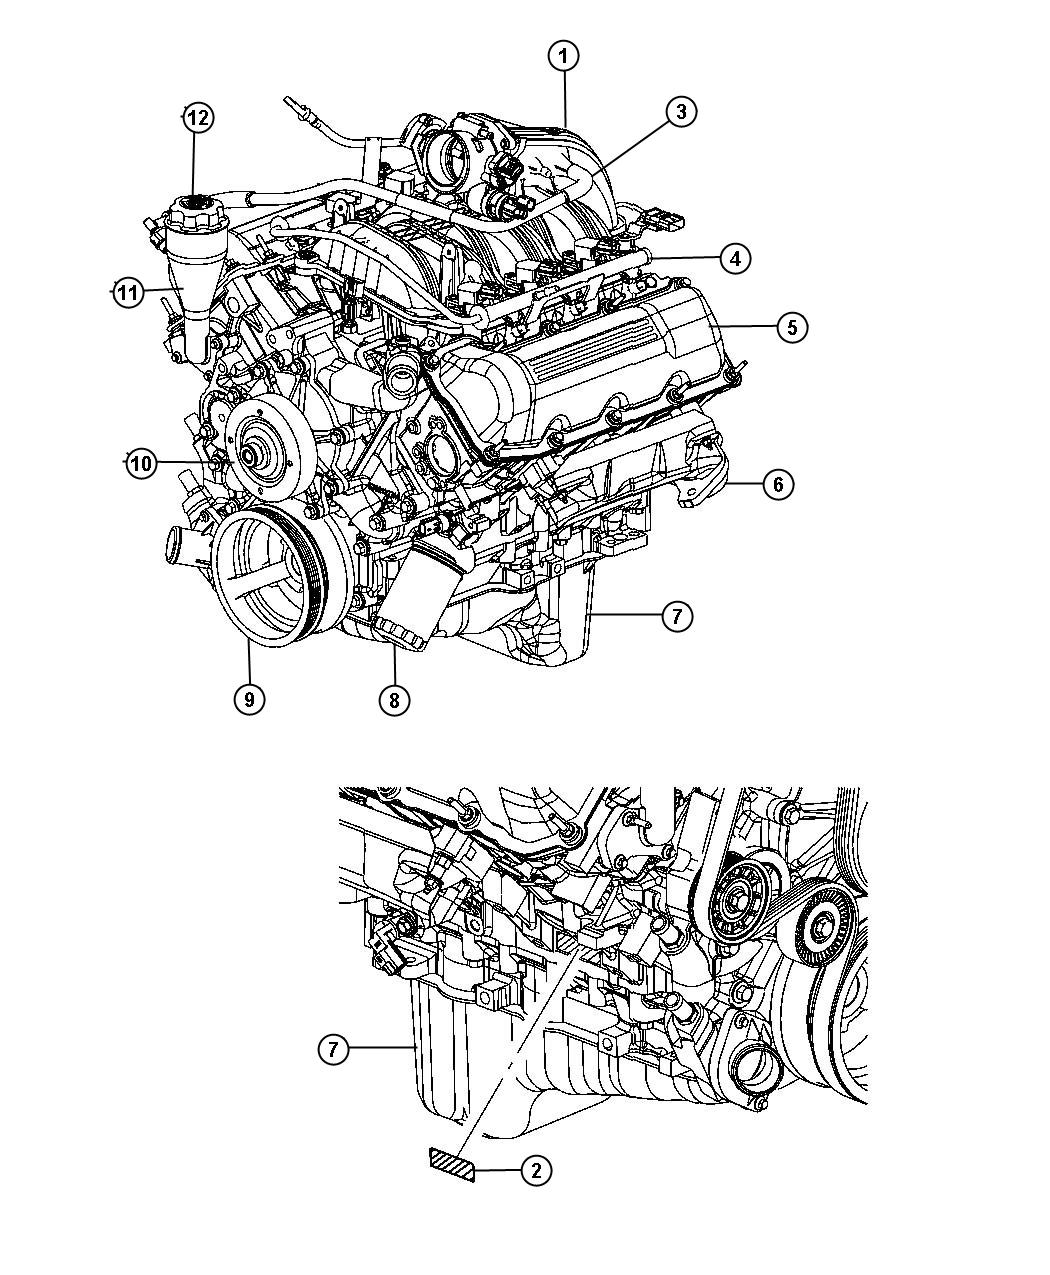 jeep liberty valve cover parts diagram  jeep  auto wiring